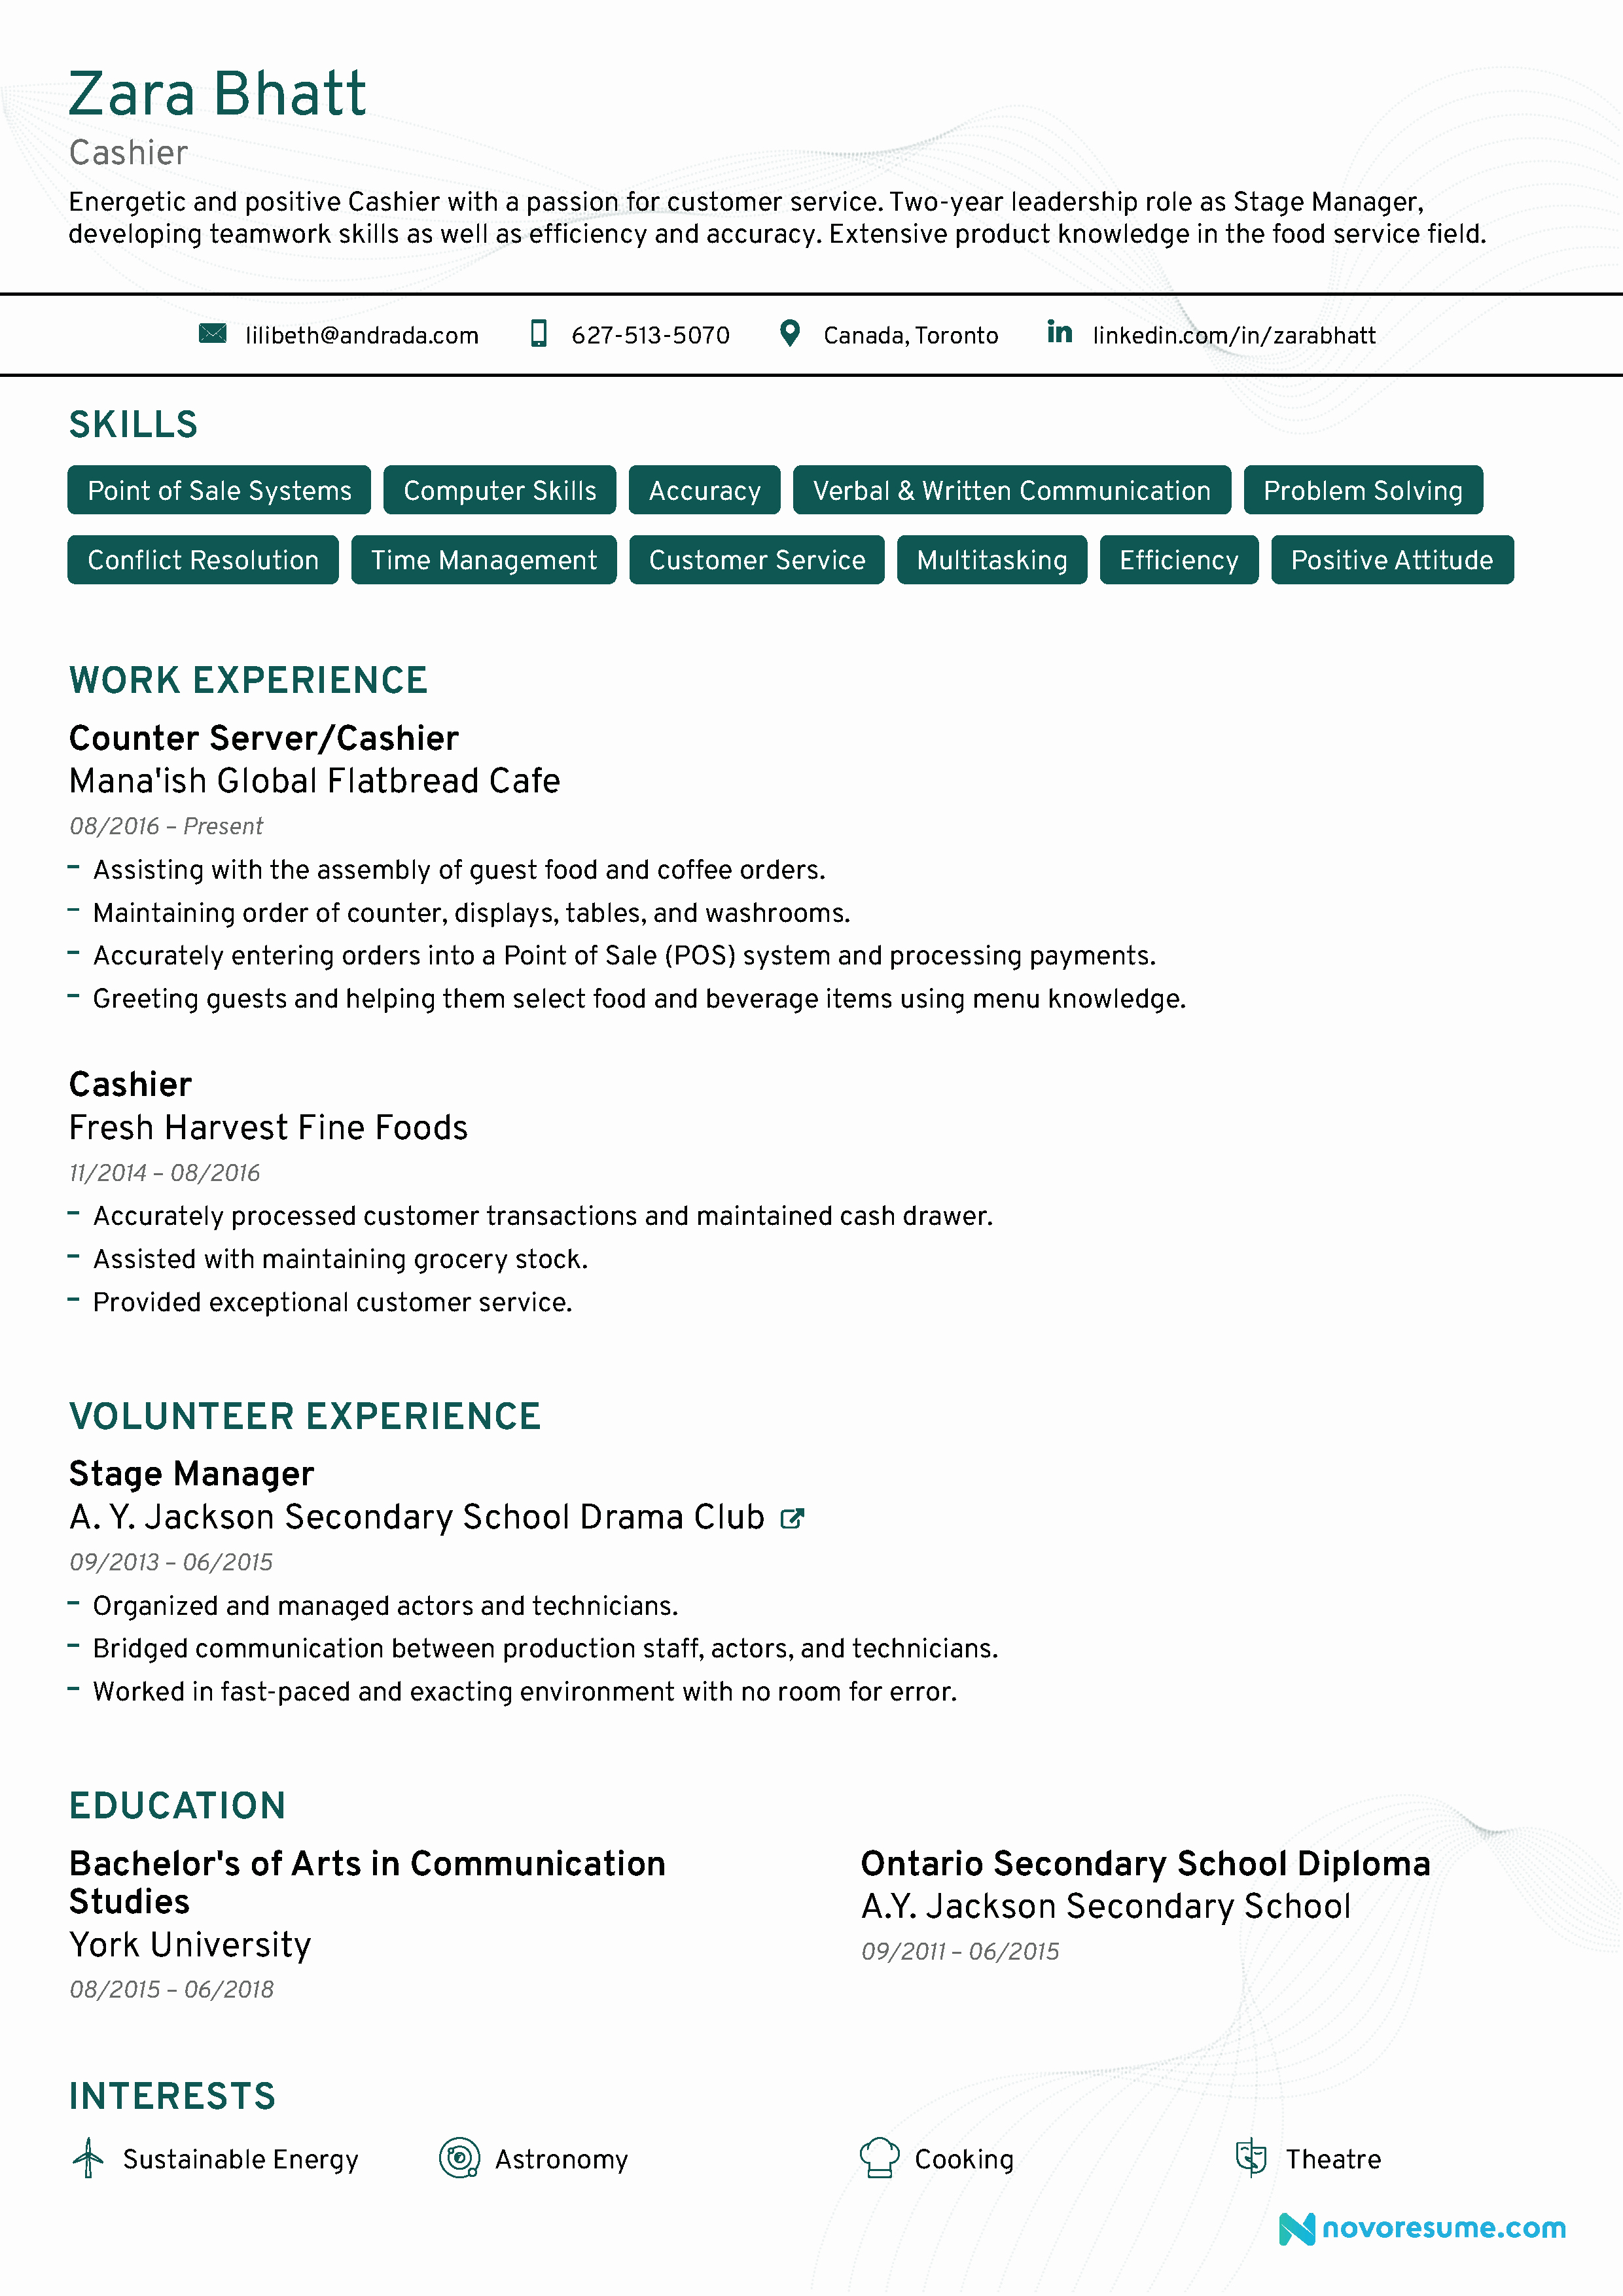 Cashier Resume [2019] Guide & Examples